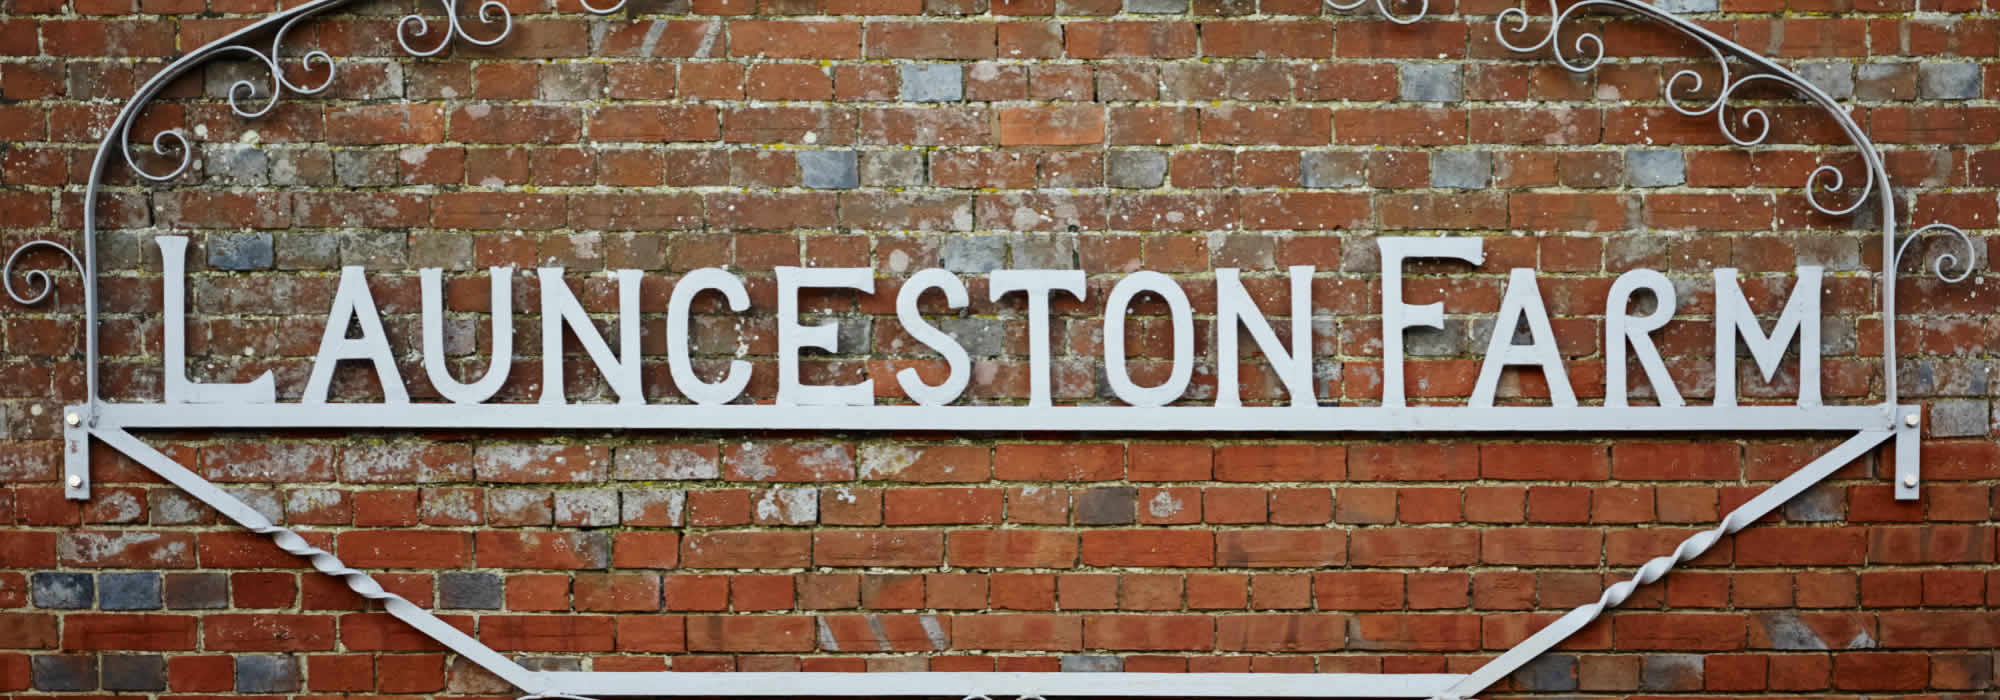 Launceston Farm sign